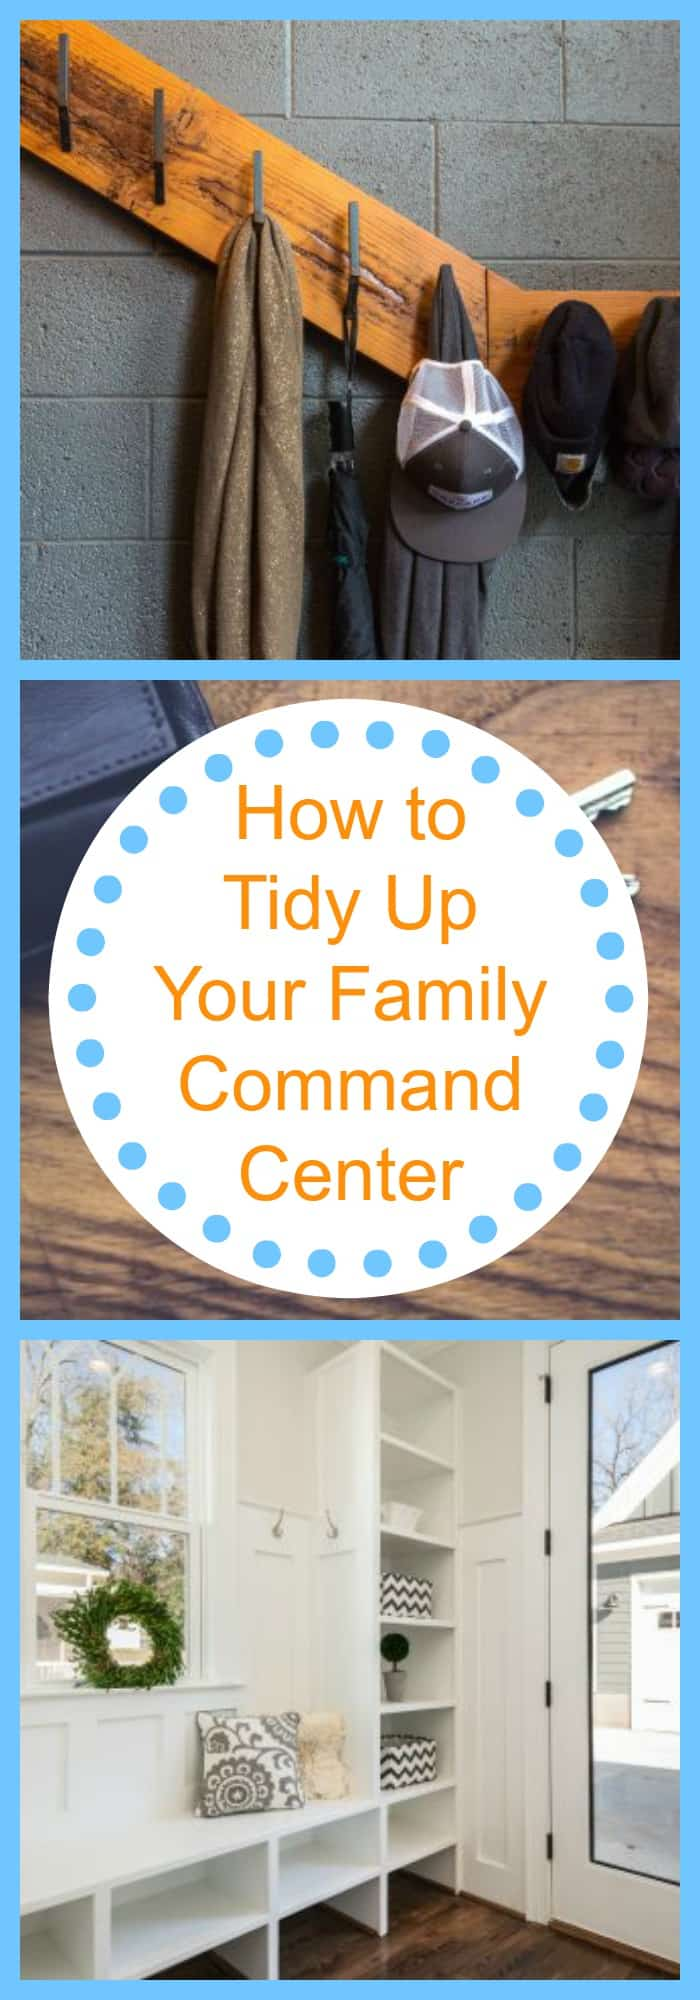 Organization--How to Tidy Up Your Family Command Center